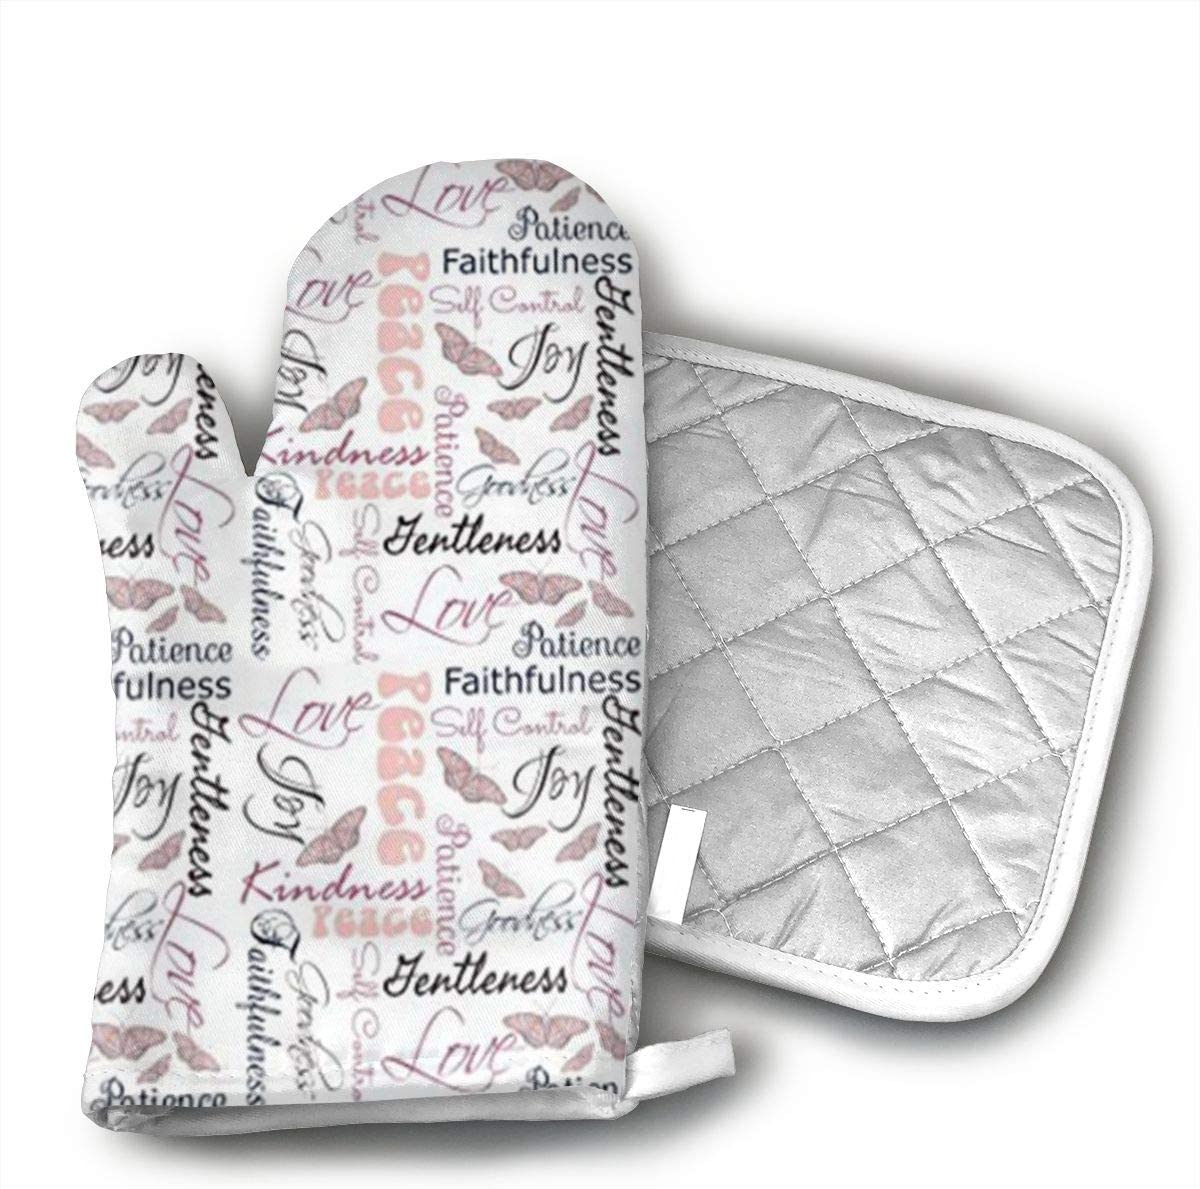 Christian Fruit of The Spirit Butterflies Oven Mitts and Pot Holders Baking Oven Gloves Hot Pads Set Heat Resistant for Finger Hand Wrist Protection